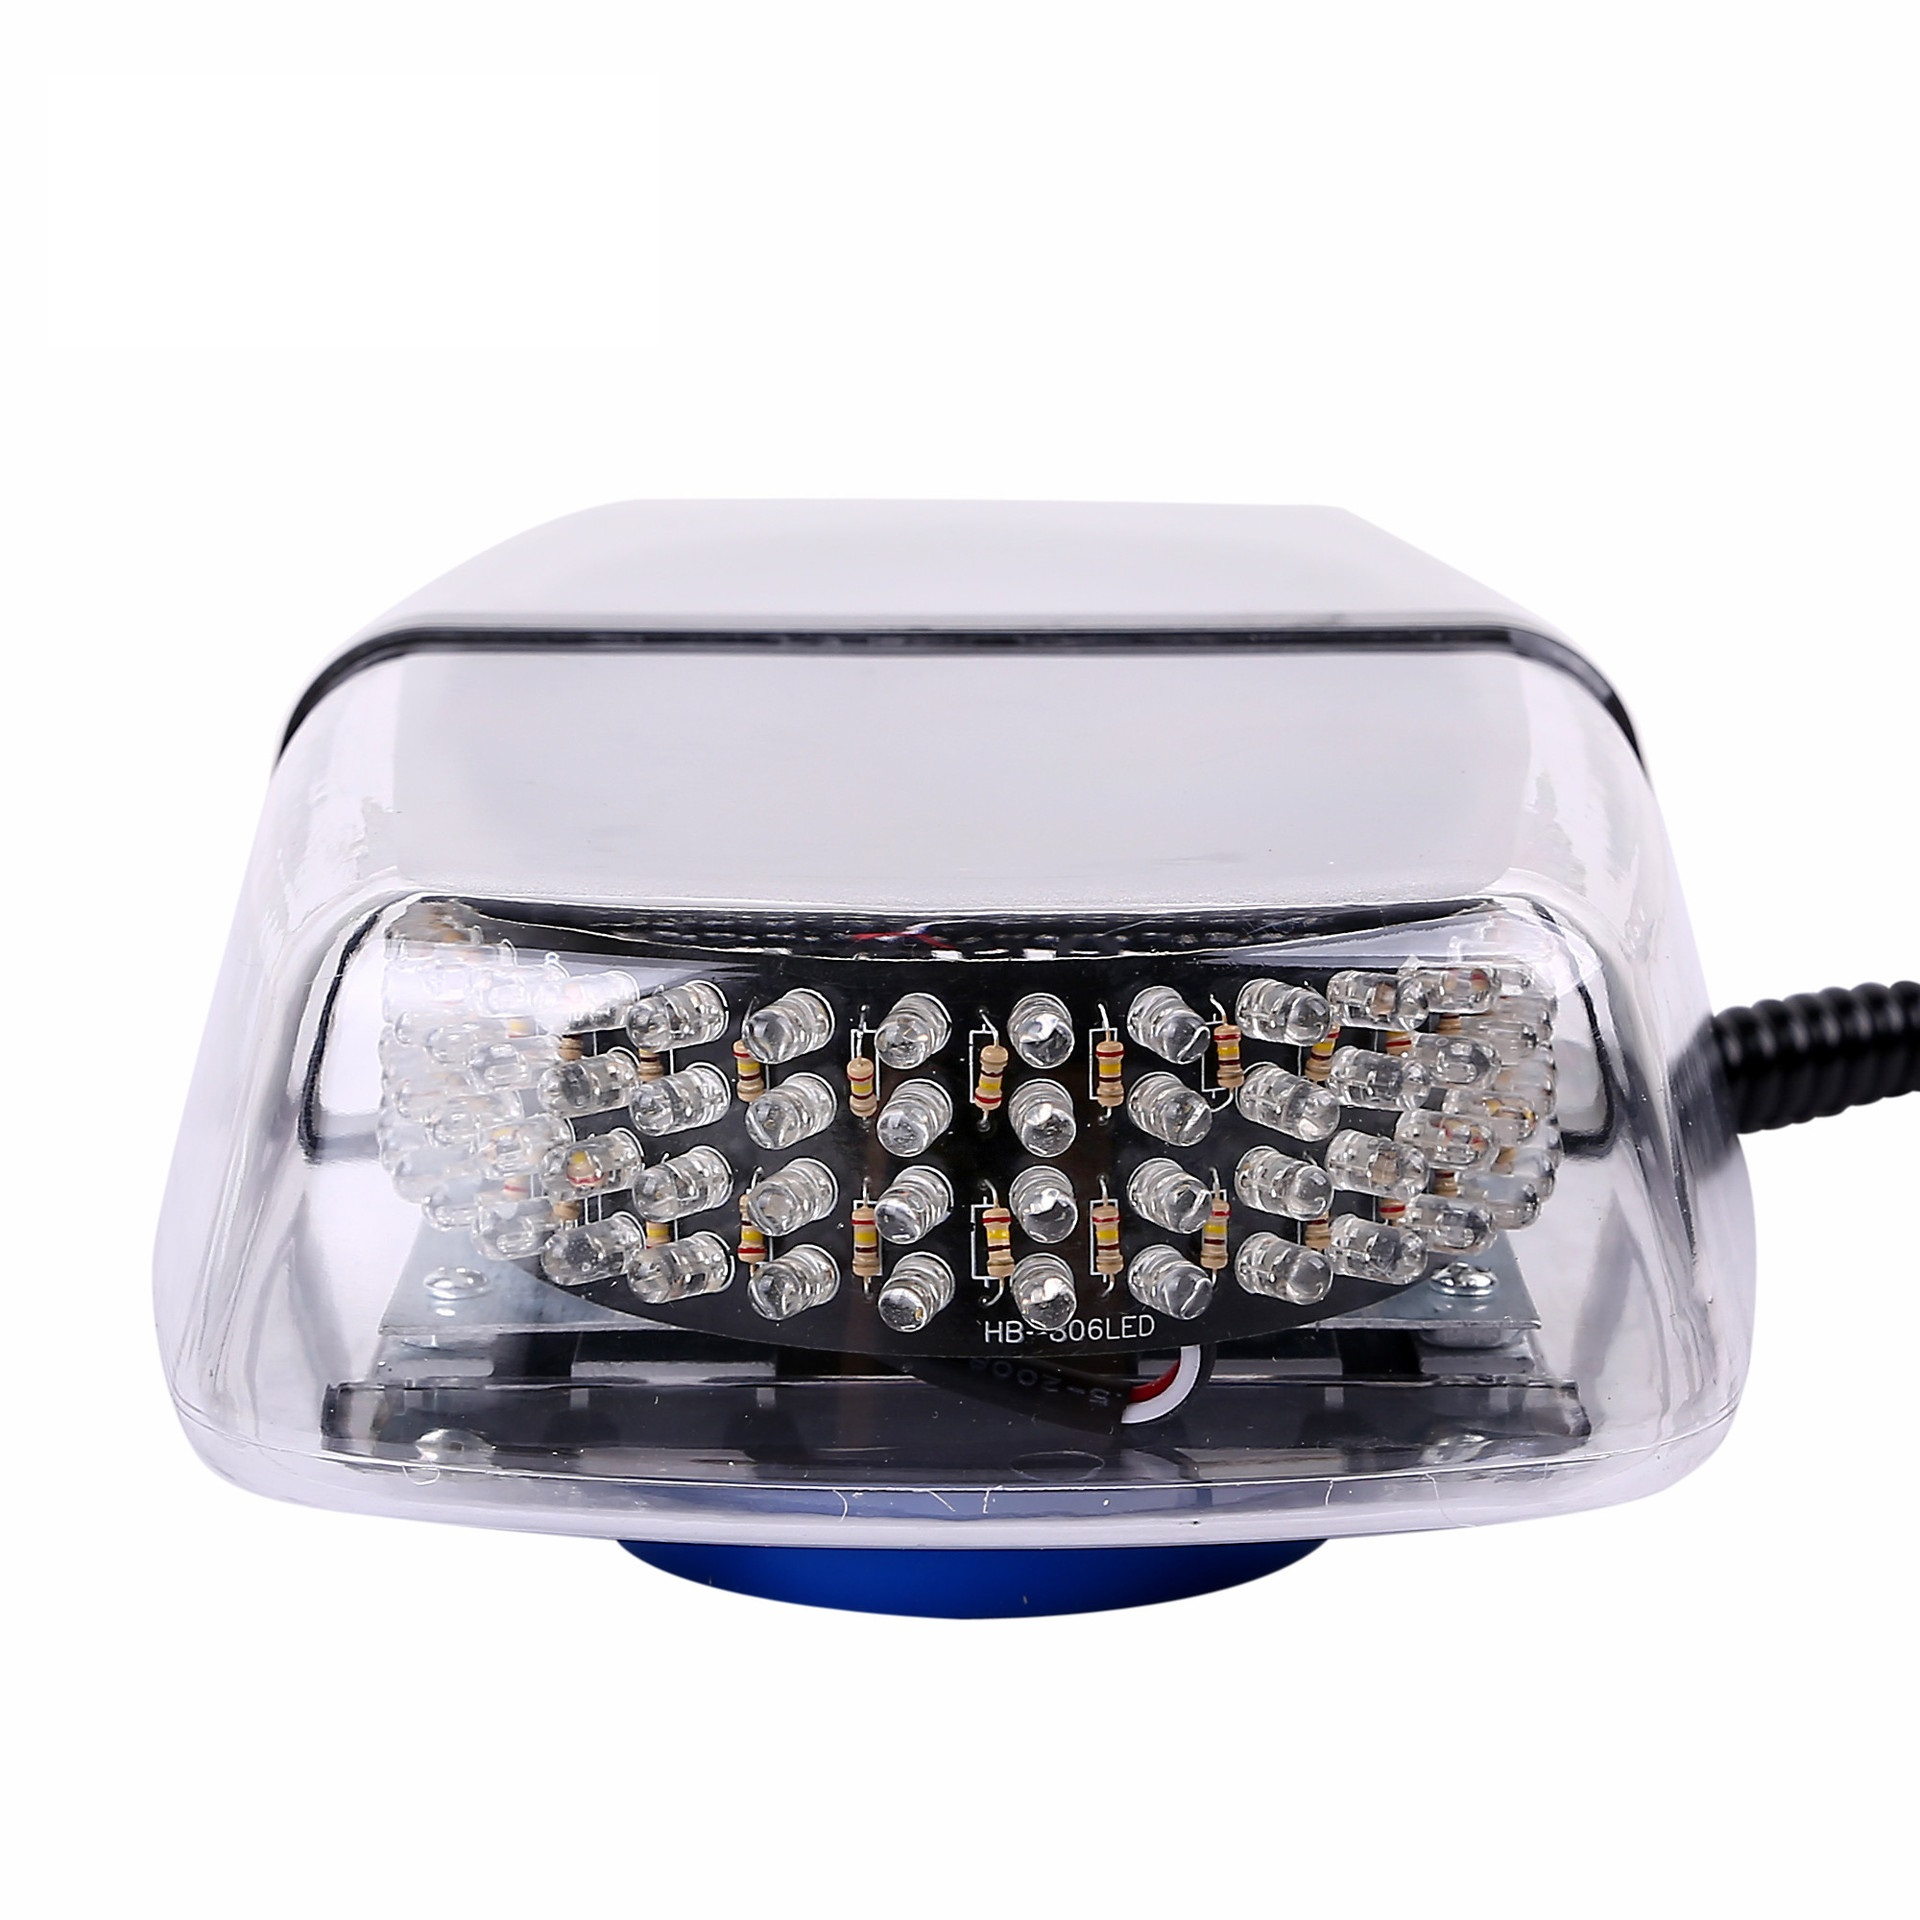 240 LED Strobe Lights Amber Roof Top Emergency Beacon Warning Mini Light Bar With Magnetic Base for 12V-24V Emergency Vehicle